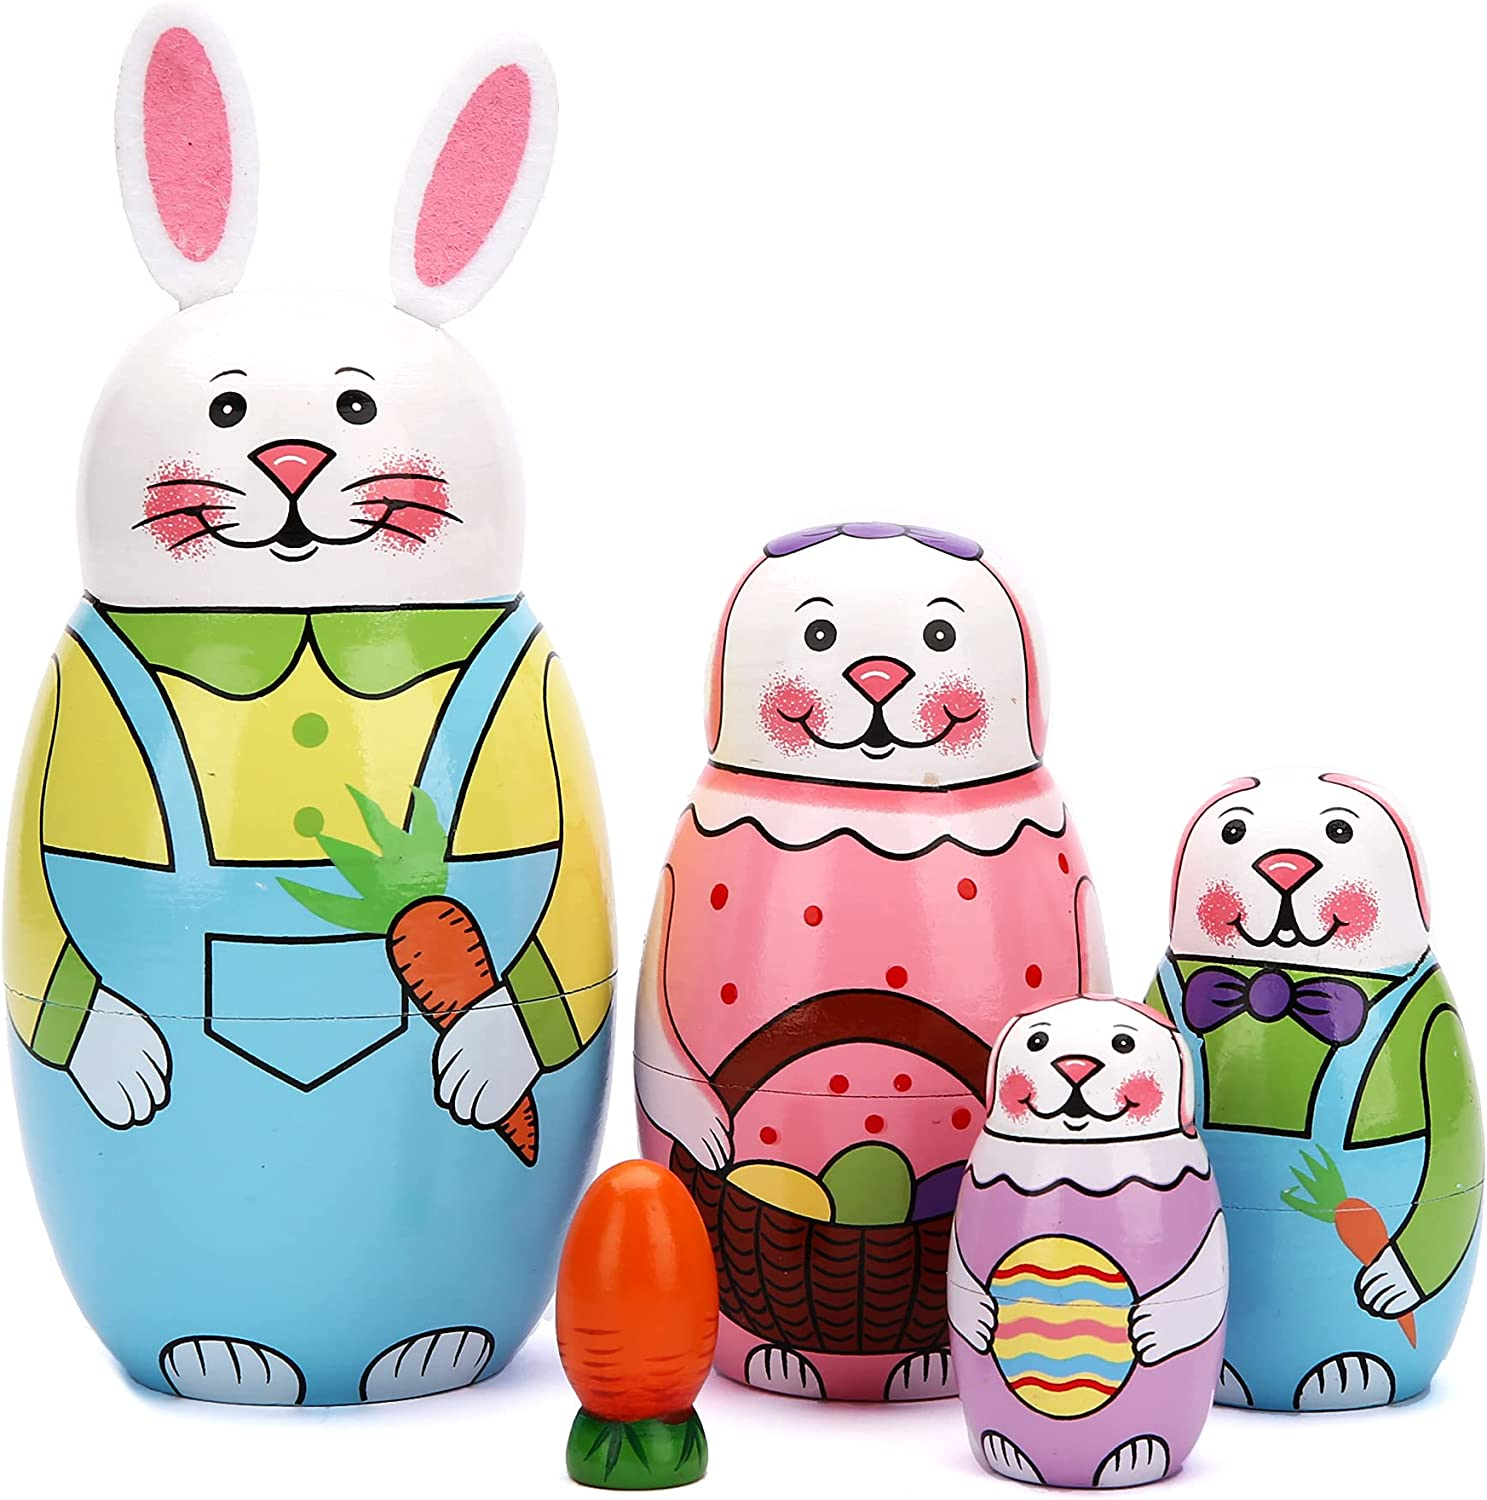 Factory outlet JoyNest Russian Nesting Dolls Matryoshka Nested Wood Se Be super welcome Stacking